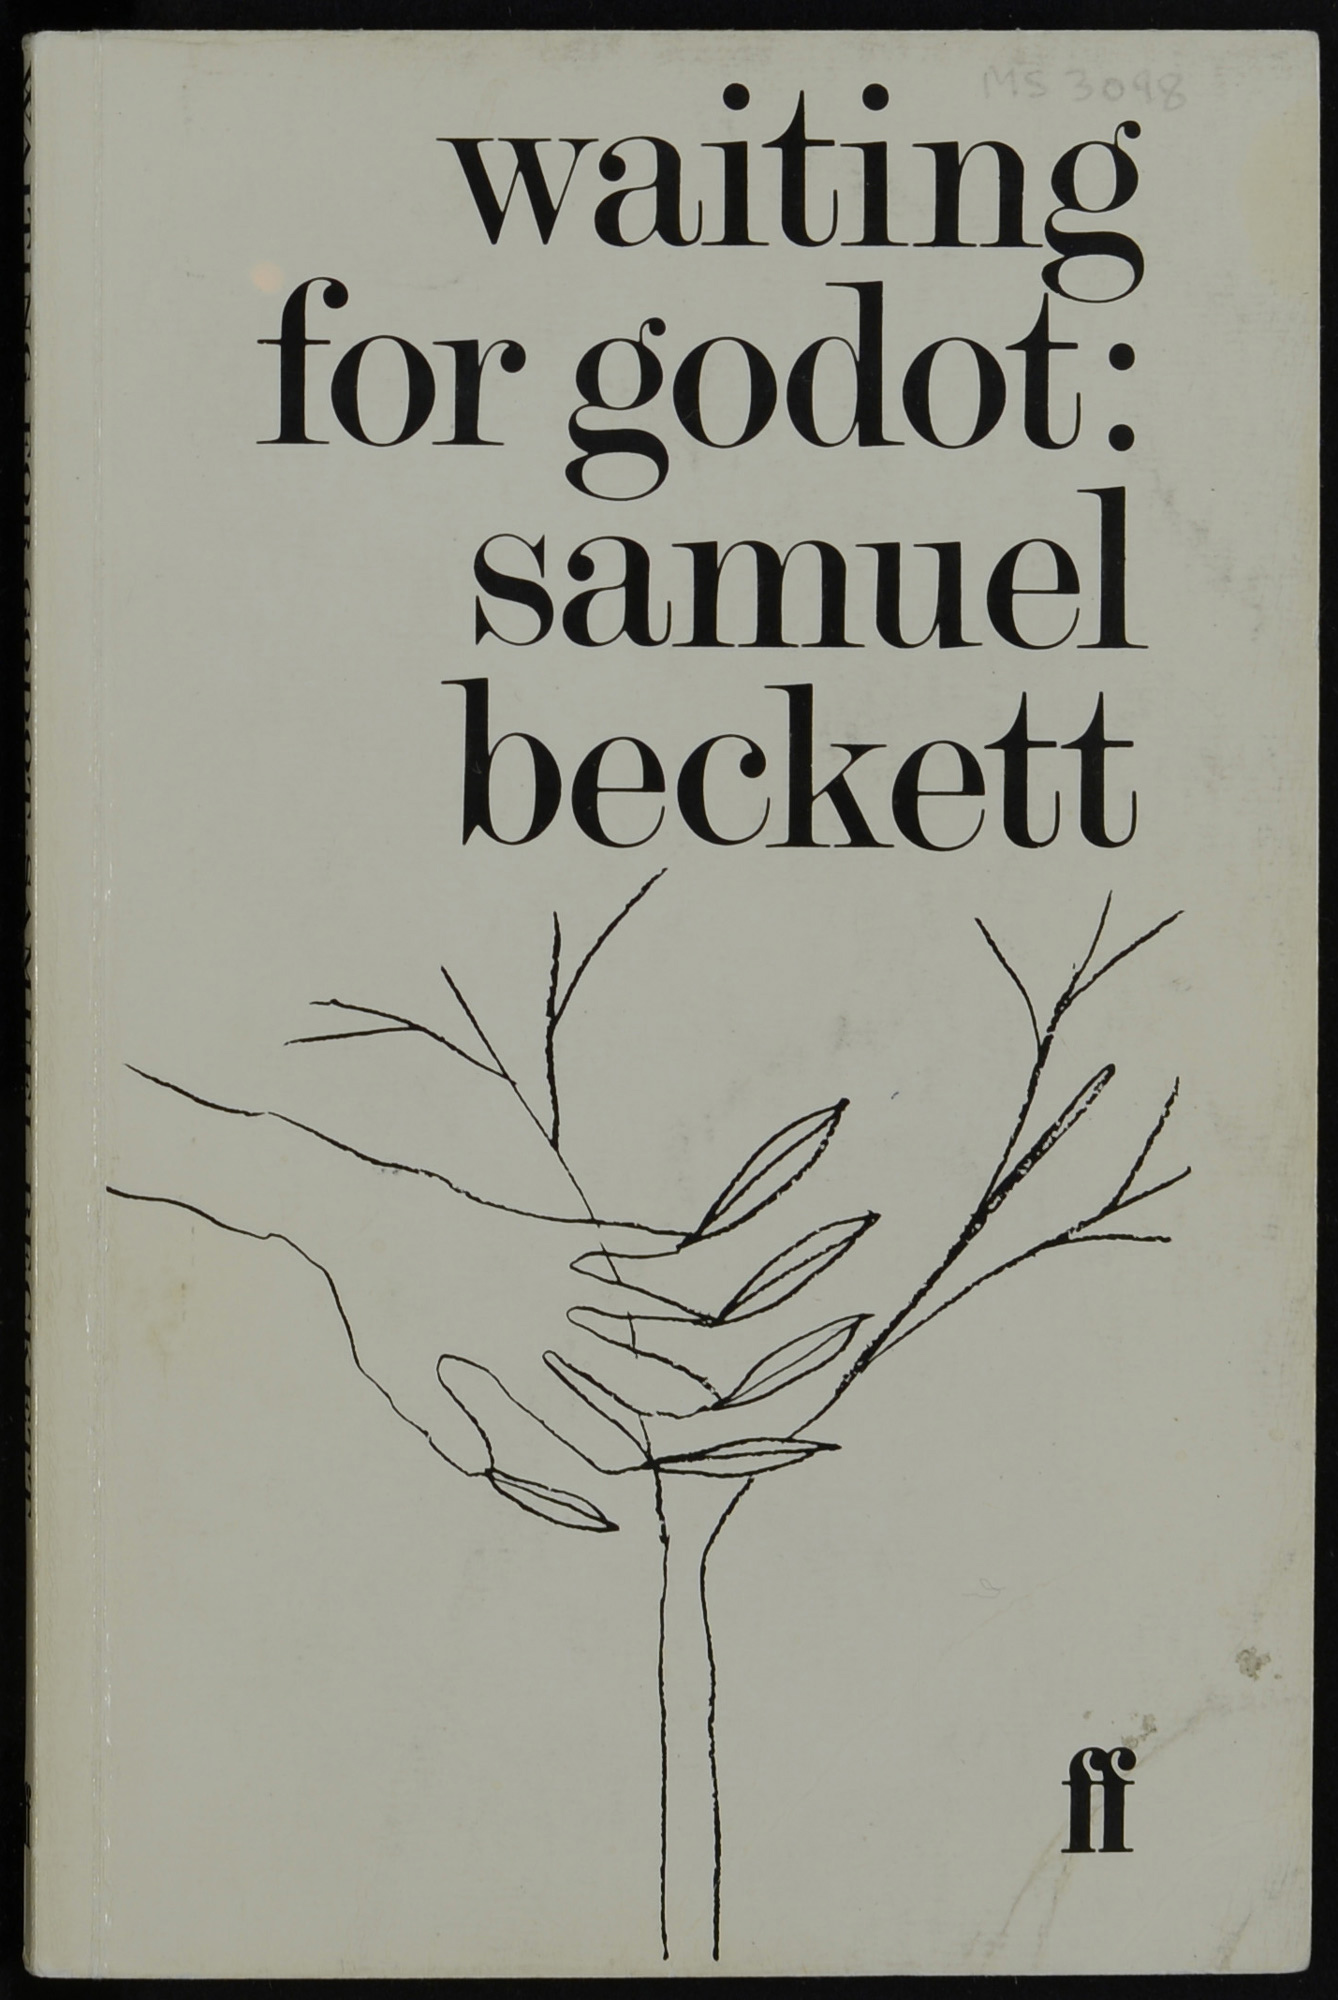 Manuscript annotations by Samuel Beckett in a copy of Waiting for Godot